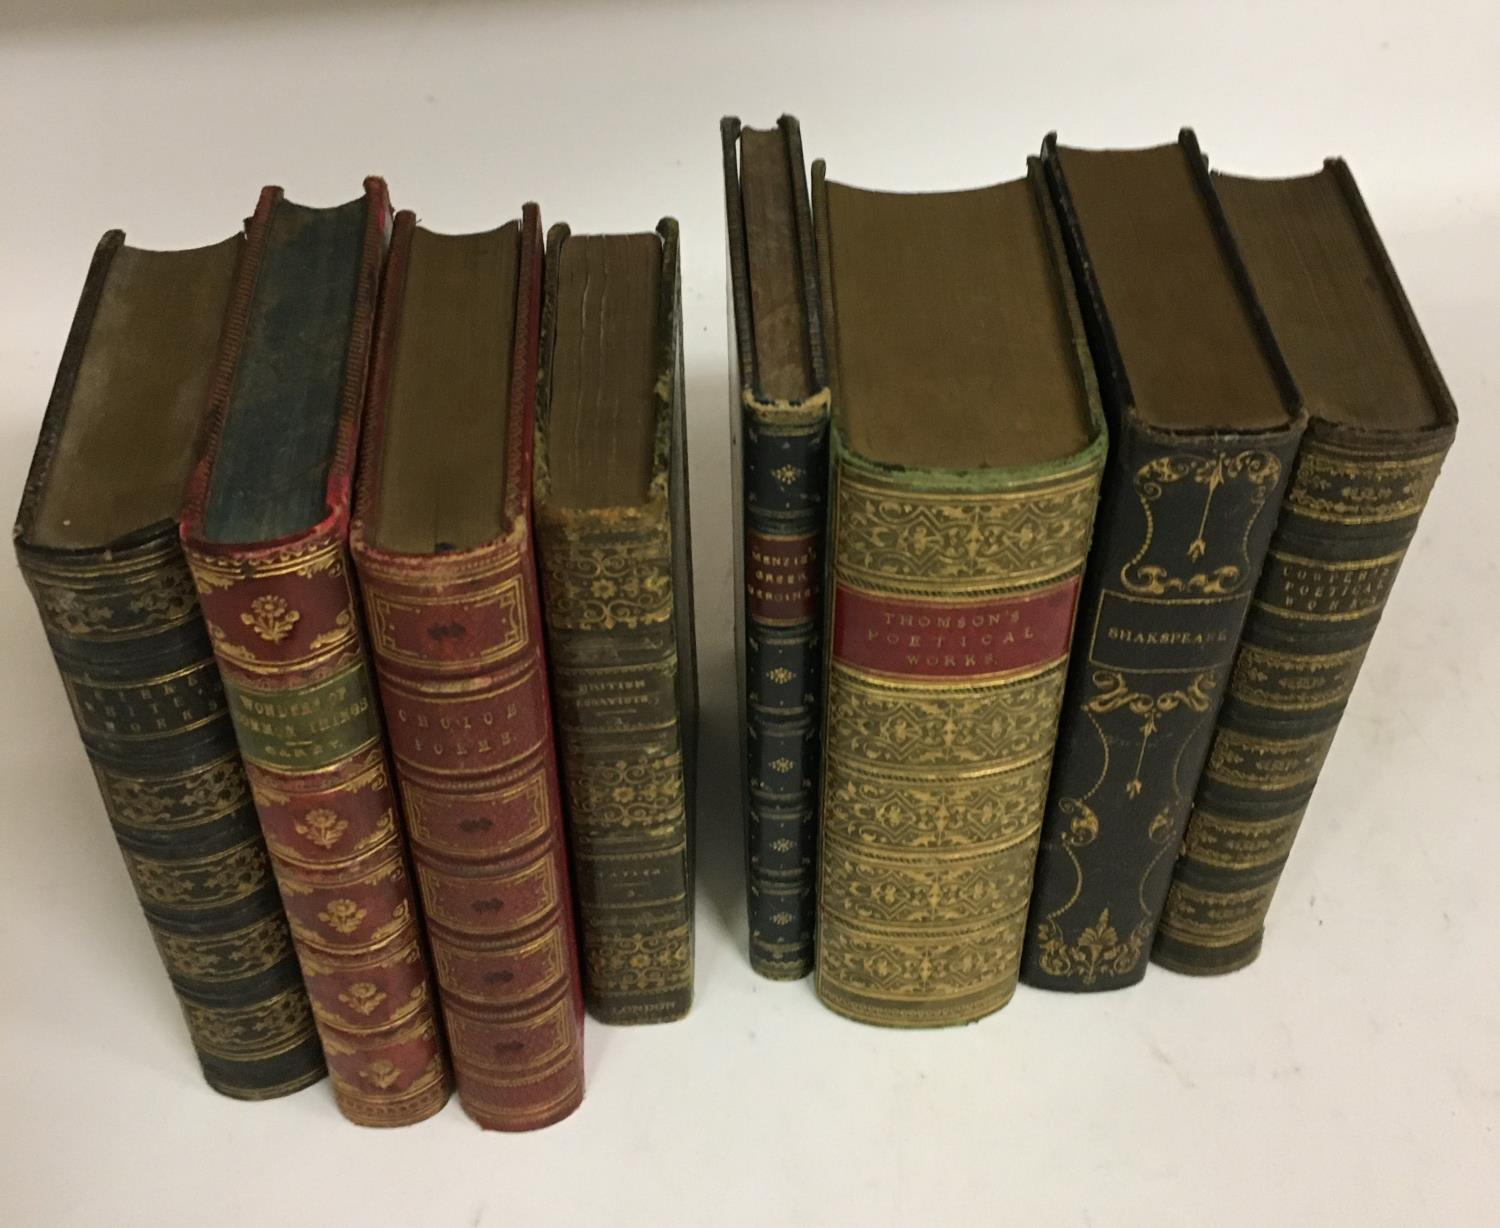 Shakespeare, William. The Complete Works, 3 volumes, plates, contemporary full morocco, decorated - Image 6 of 7